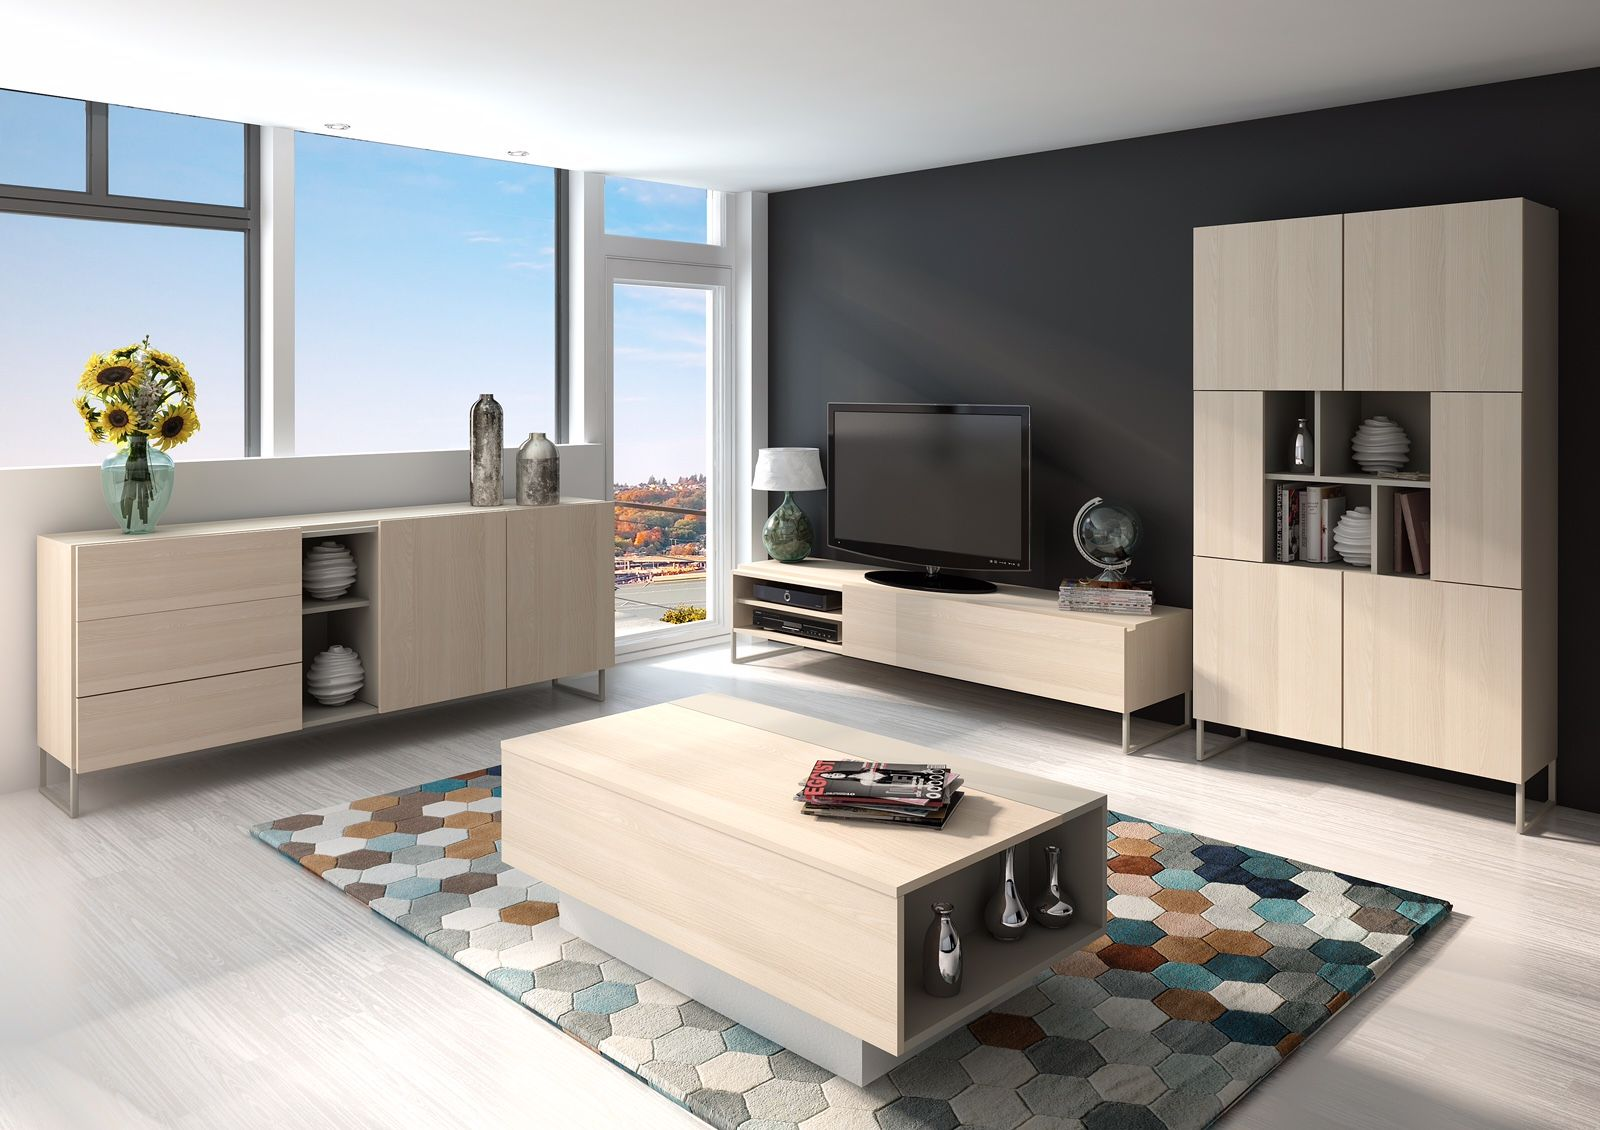 Trasman Manufactures Modern And High Quality Furniture At The Most